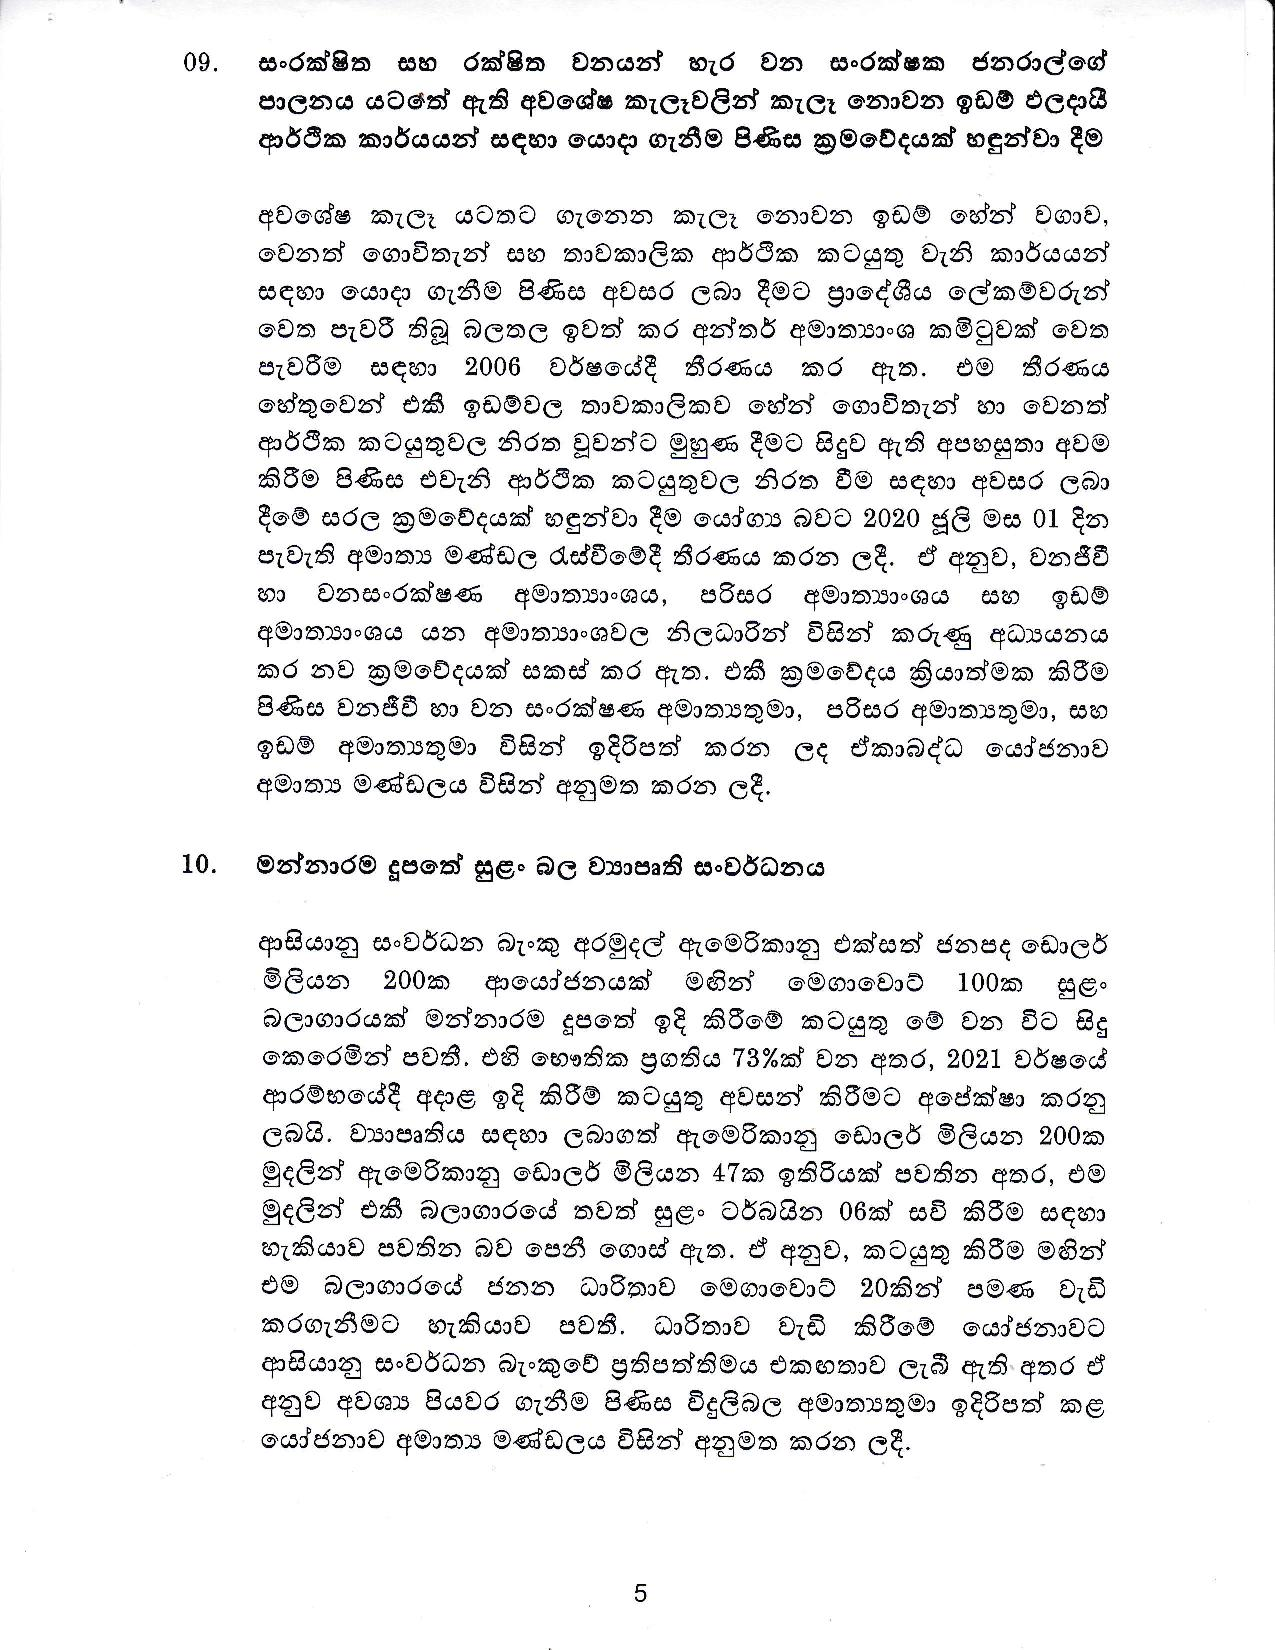 Cabinet Decision on 26.10.2020 page 005